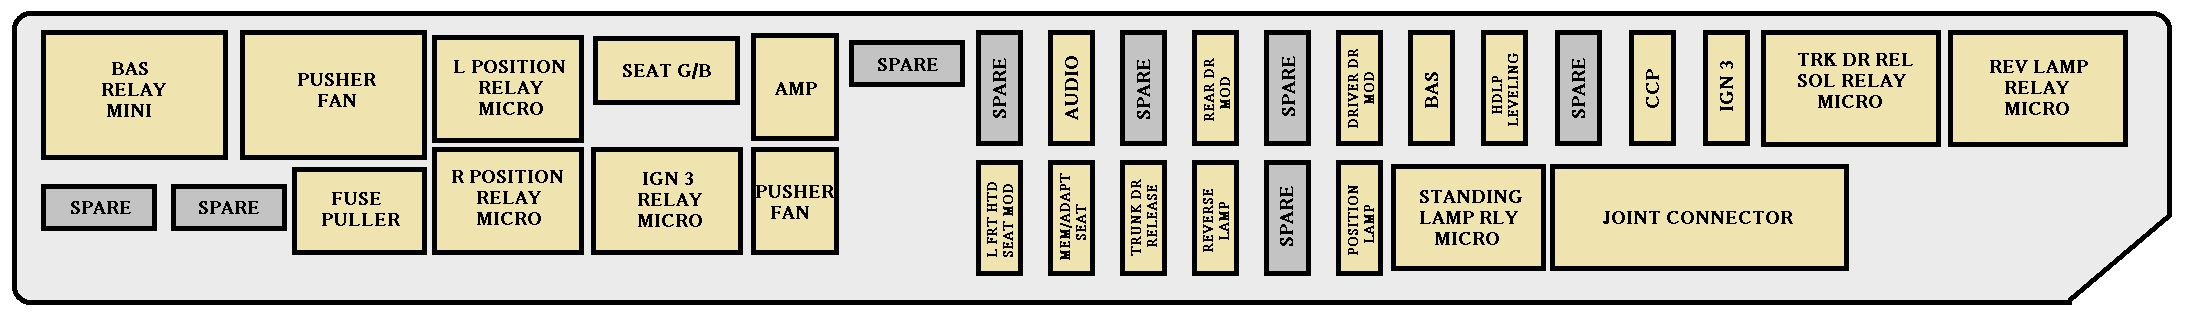 Cadillac CTS mk1 fuse box rear udnerseat drivers side 2004 cadillac cts mk1 (first generation; 2004) fuse box diagram 2003 cadillac deville fuse box diagram at n-0.co